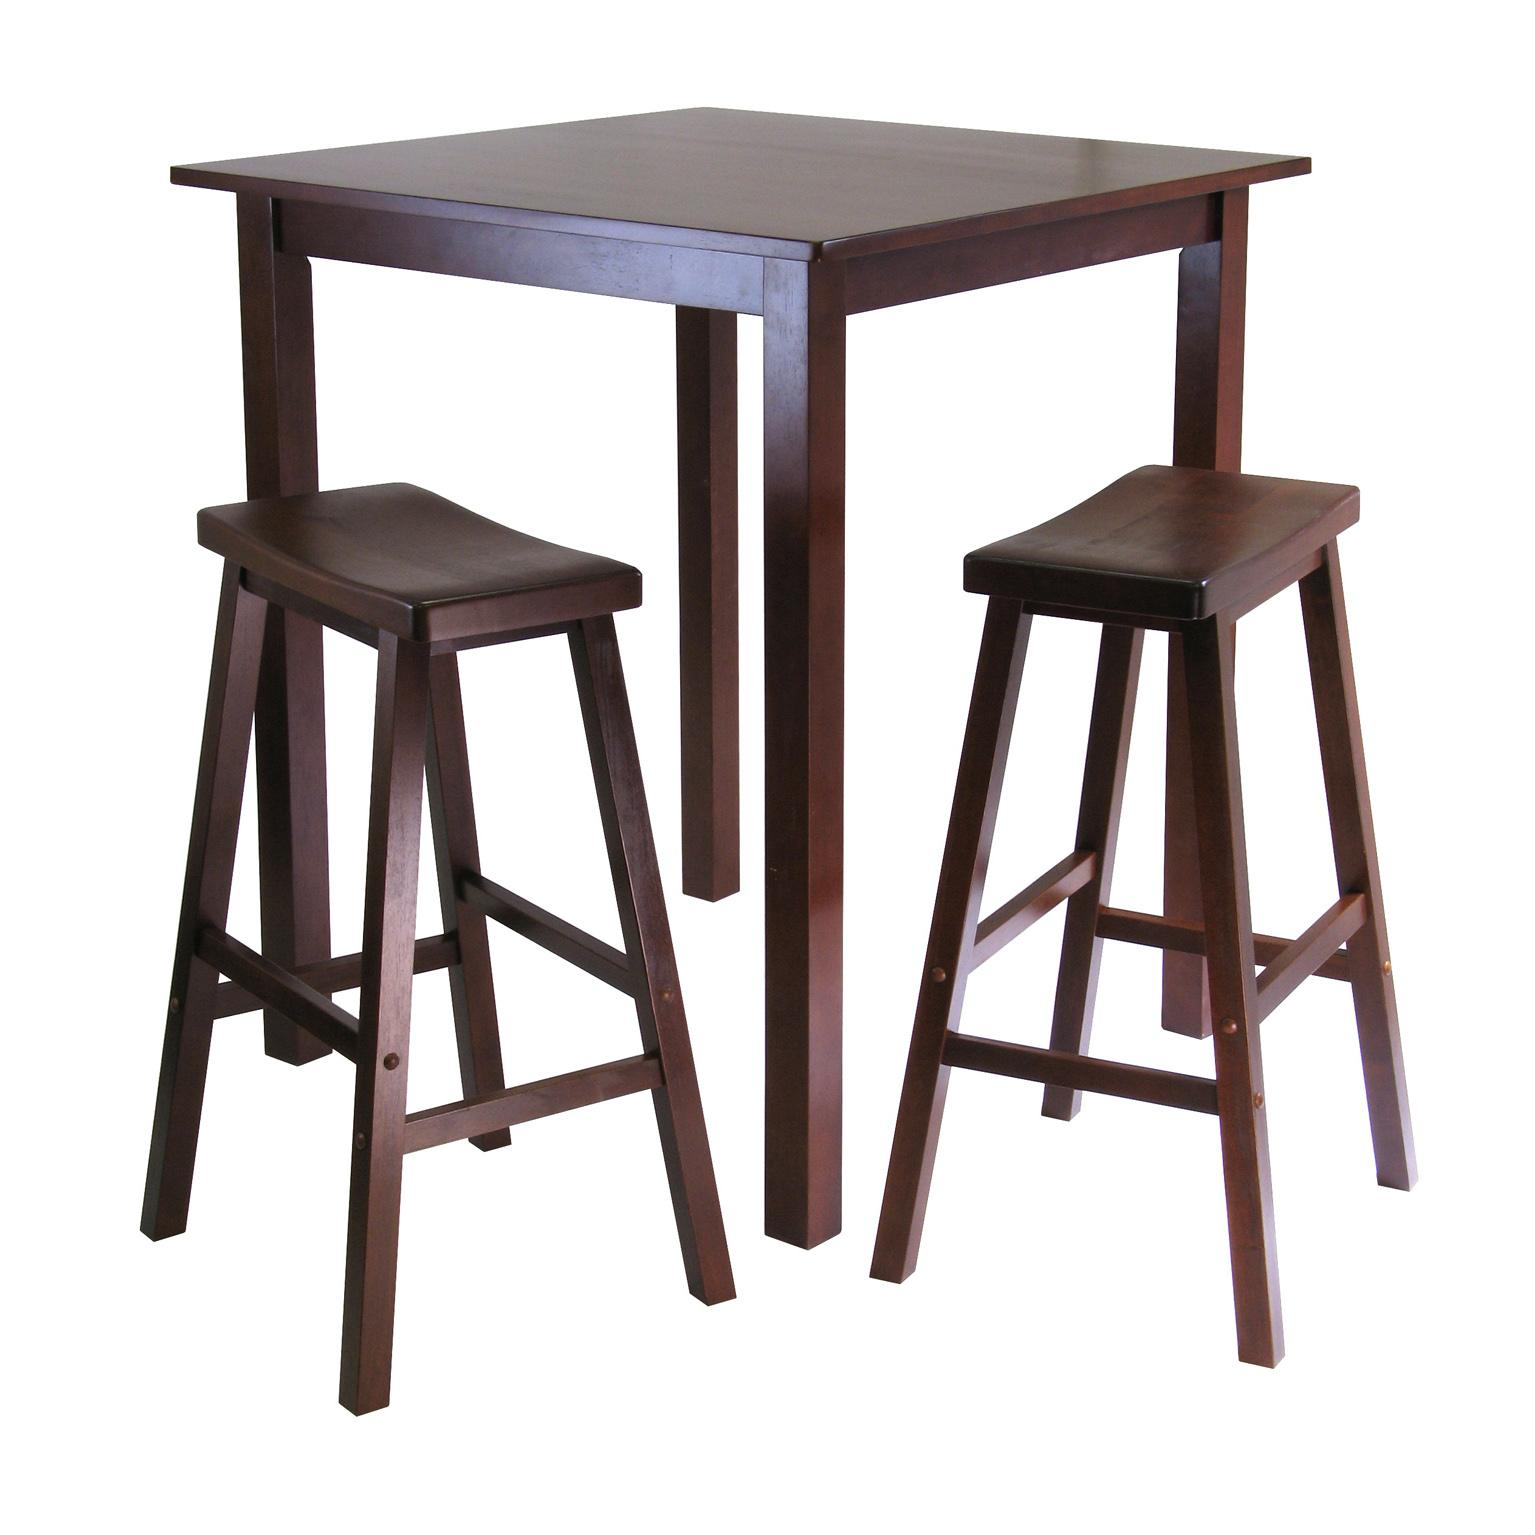 inspiring swigart piece pub table set height iron base chairs bistro steel industrial for metal high pedestal chair ideas target adjustable diy round basement counter stools wood